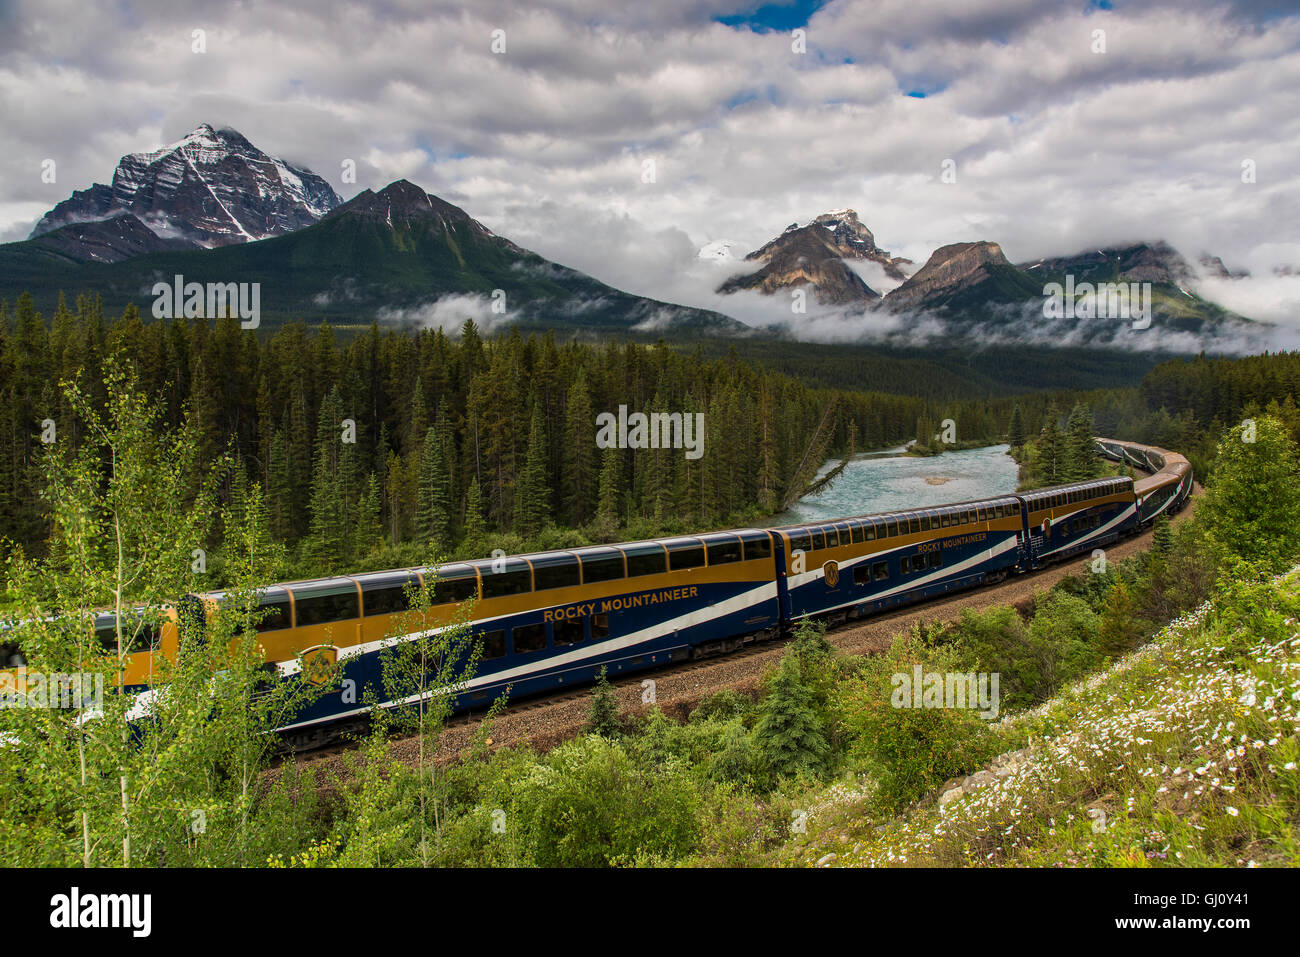 Rocky Mountaineer train de voyageurs à Morant's Curve, Banff National Park, Alberta, Canada Photo Stock